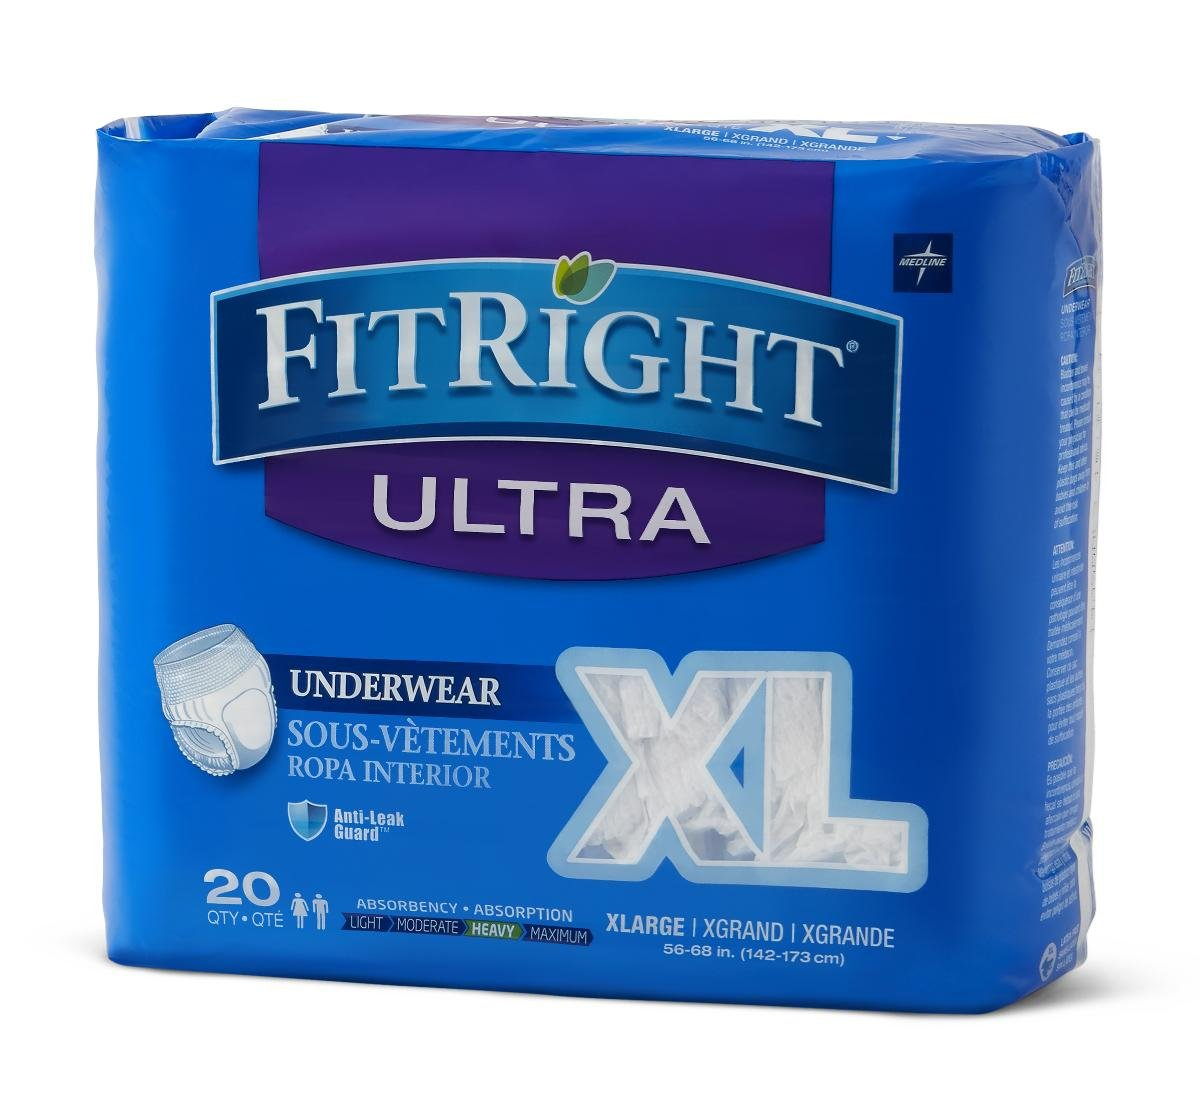 Amazon.com : Medline FitRight Ultra Moderate Absorption Disposable Protective Underwear - X-Large/56-68 Inch Waist, 80 Count : Baby